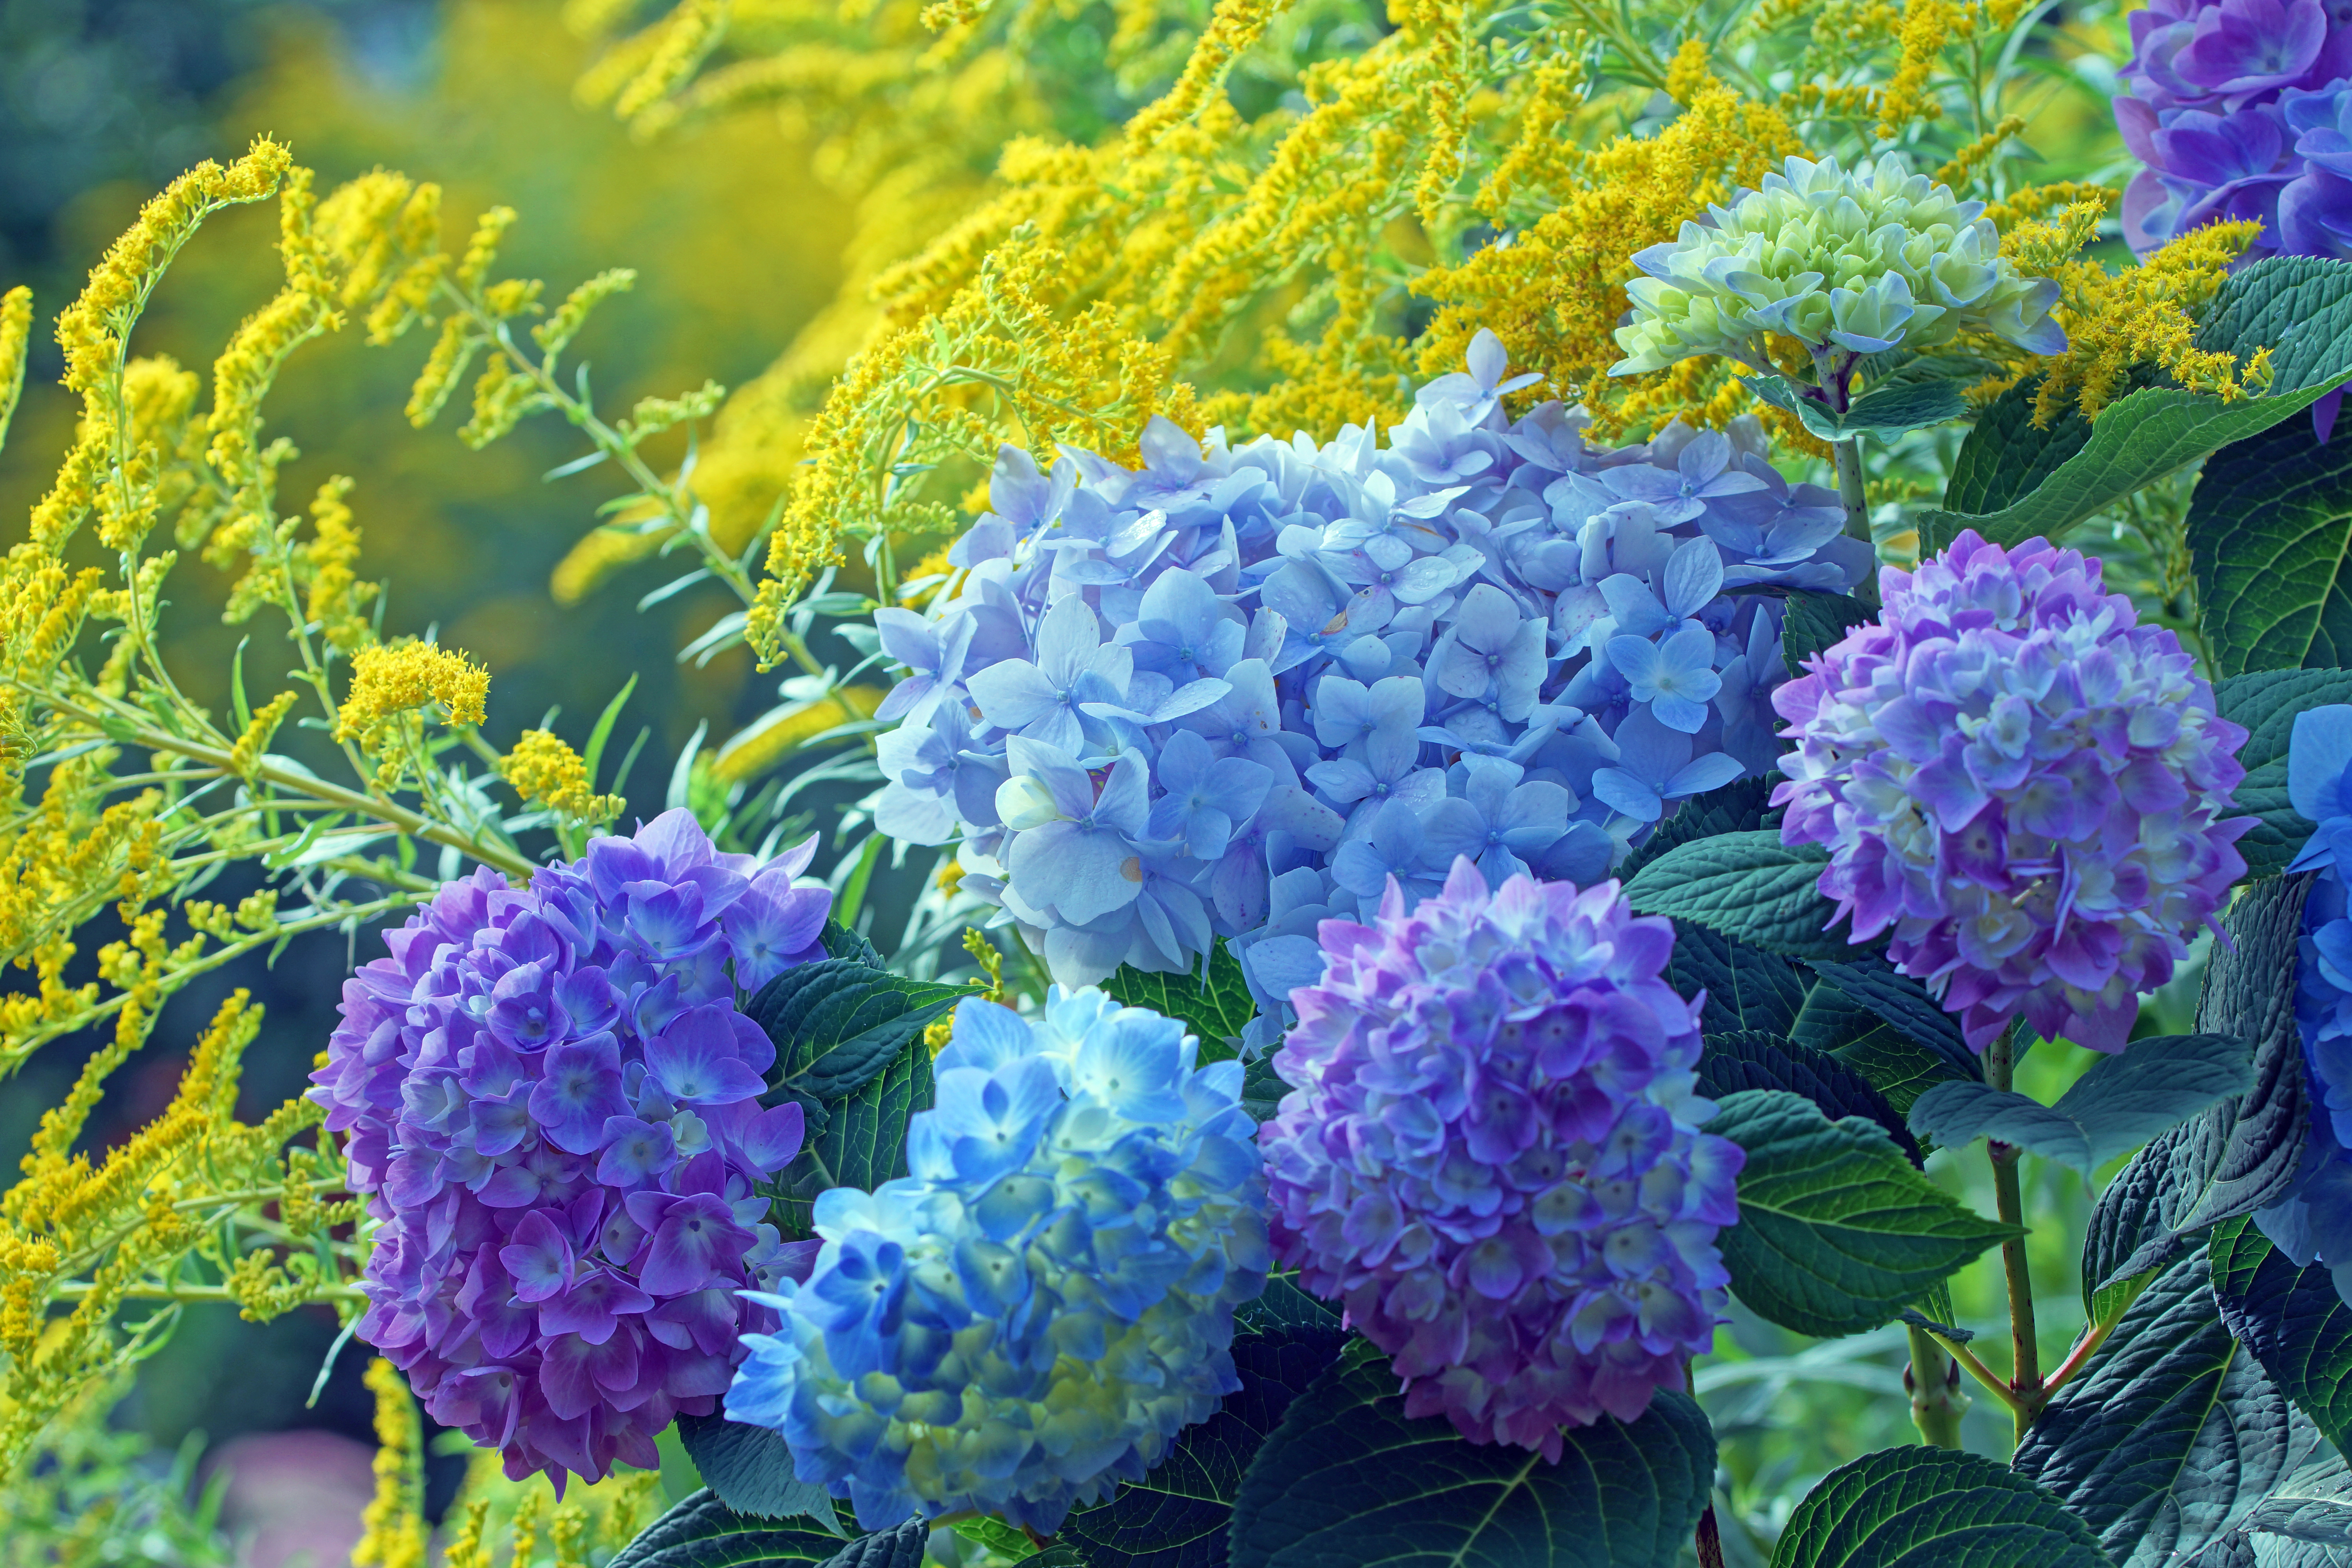 How to Cut Back Limelight Hydrangeas | Home Guides | SF Gate